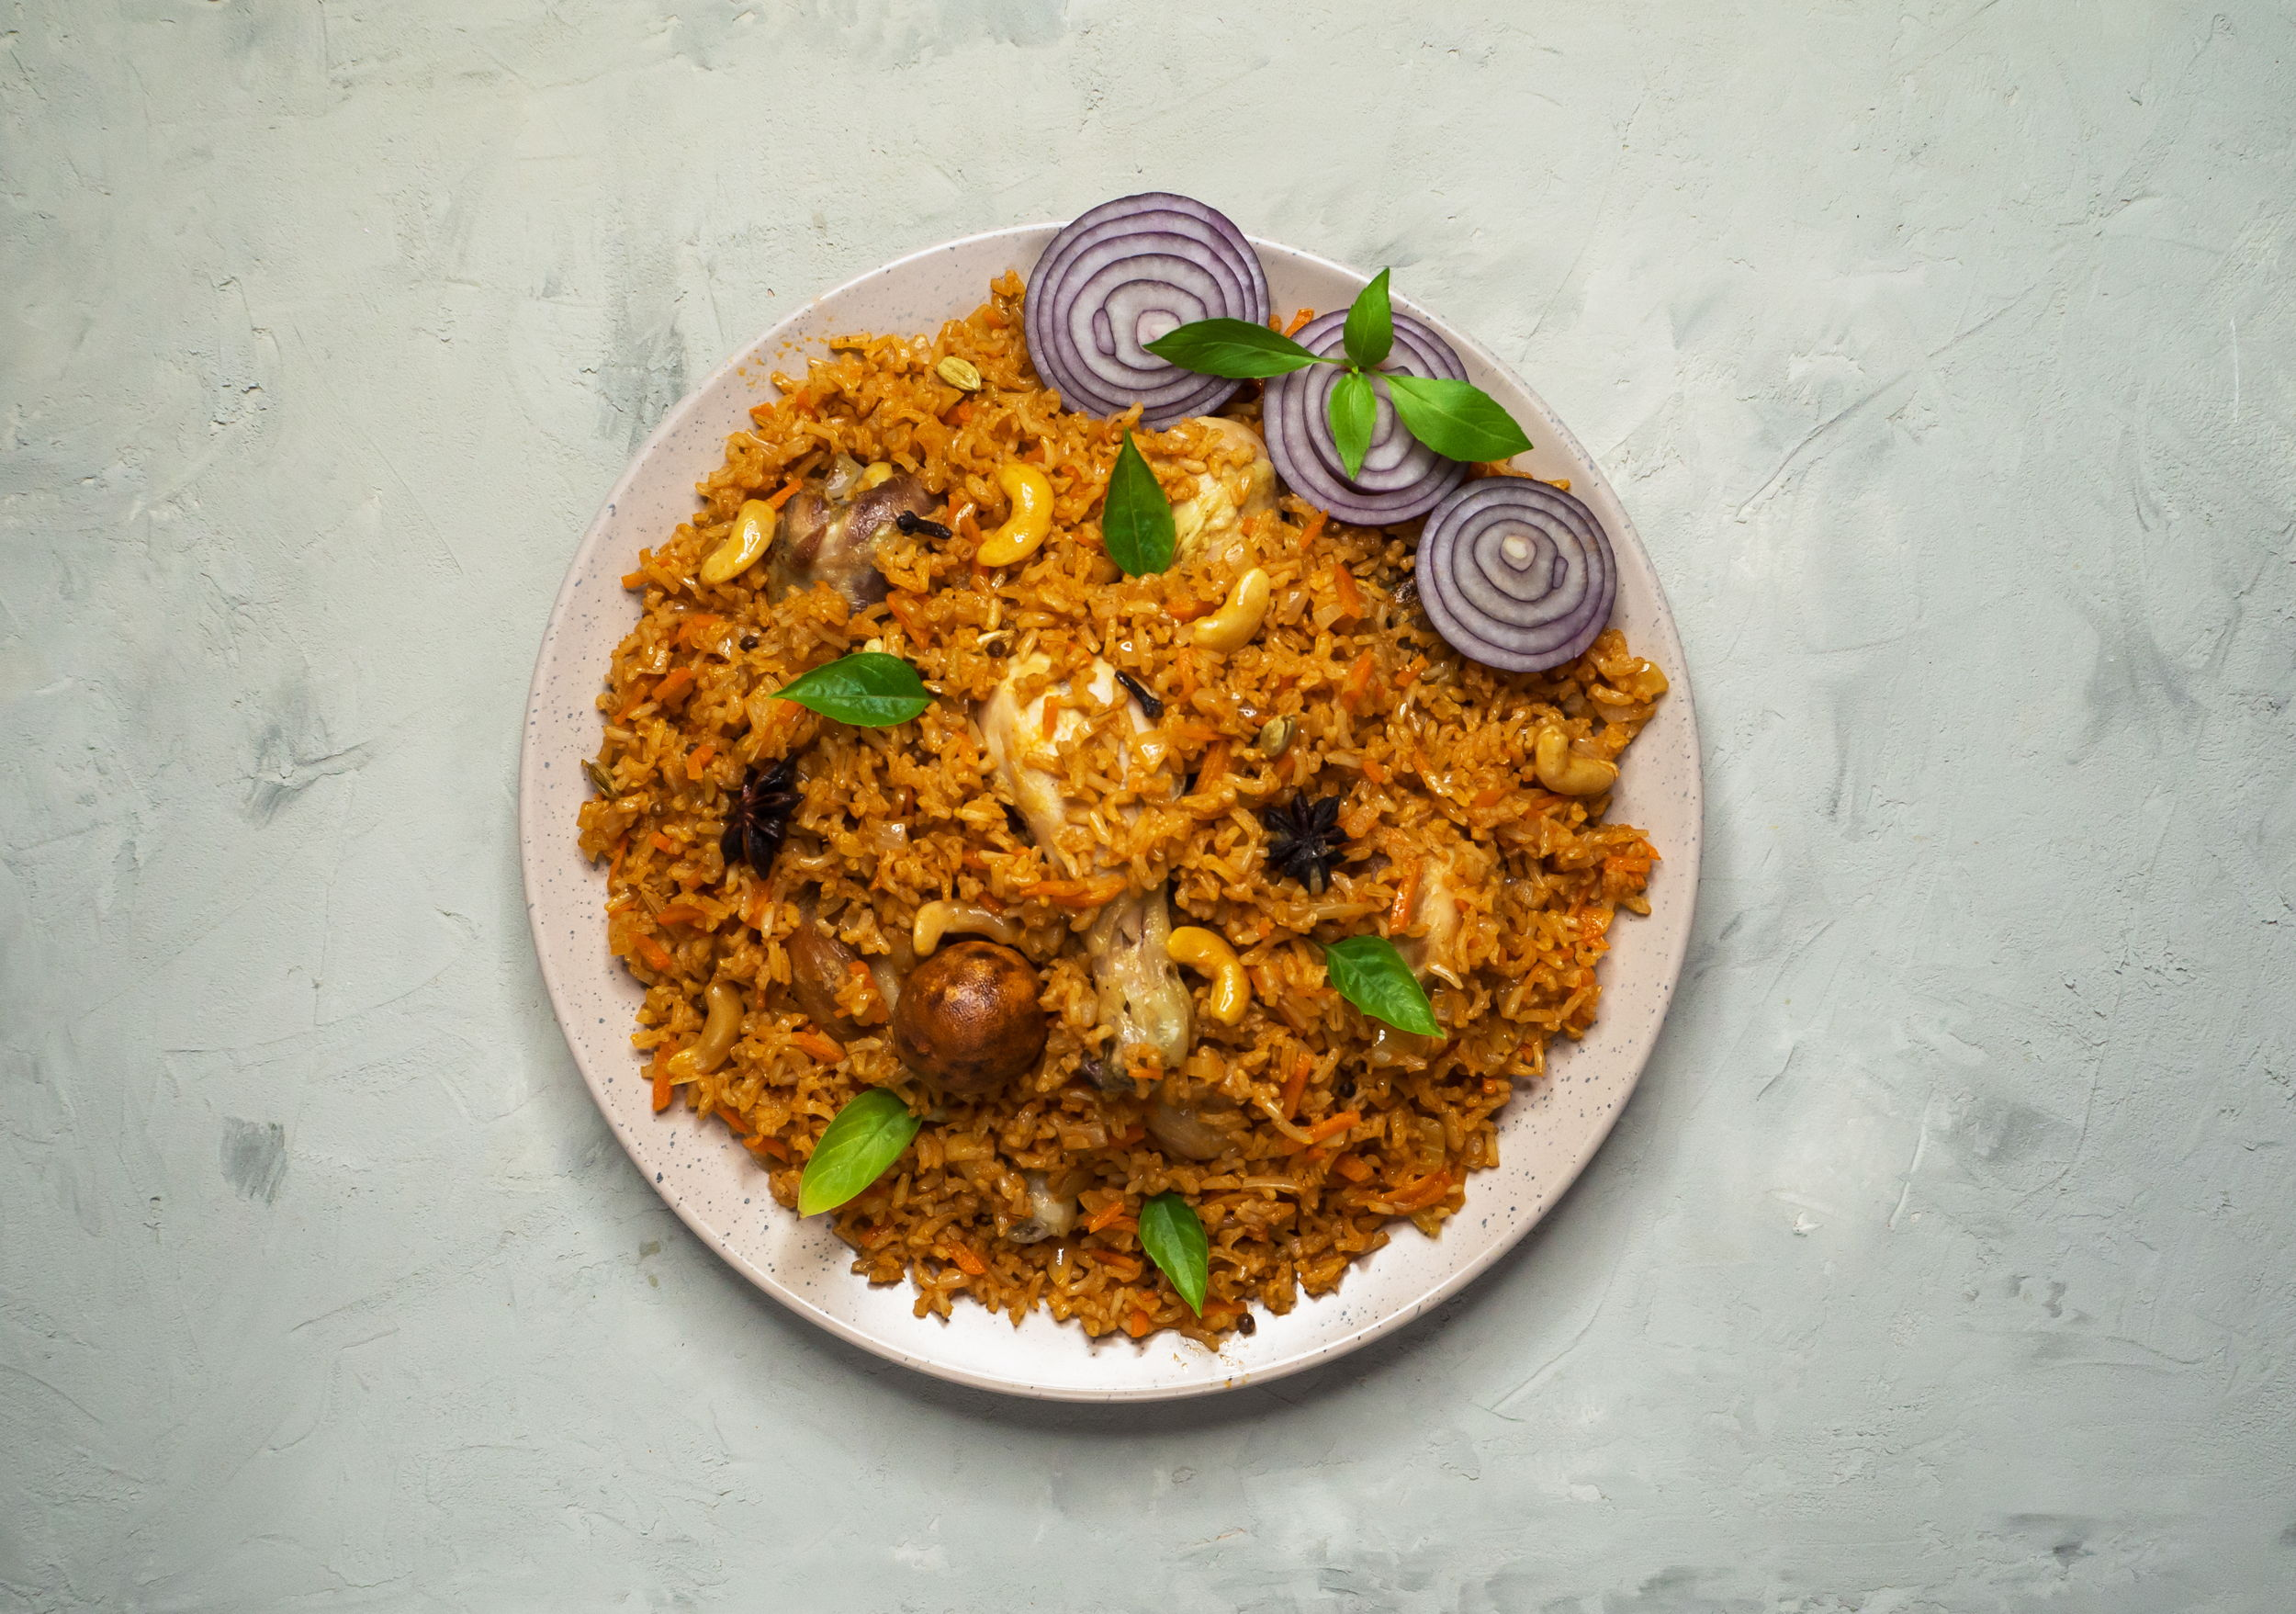 Middle Eastern Recipes l Middle Eastern Food Recipes l Easy Middle Eastern Recipes l Middle Eastern Chicken Recipes l Middle Eastern Vegetarian Recipes